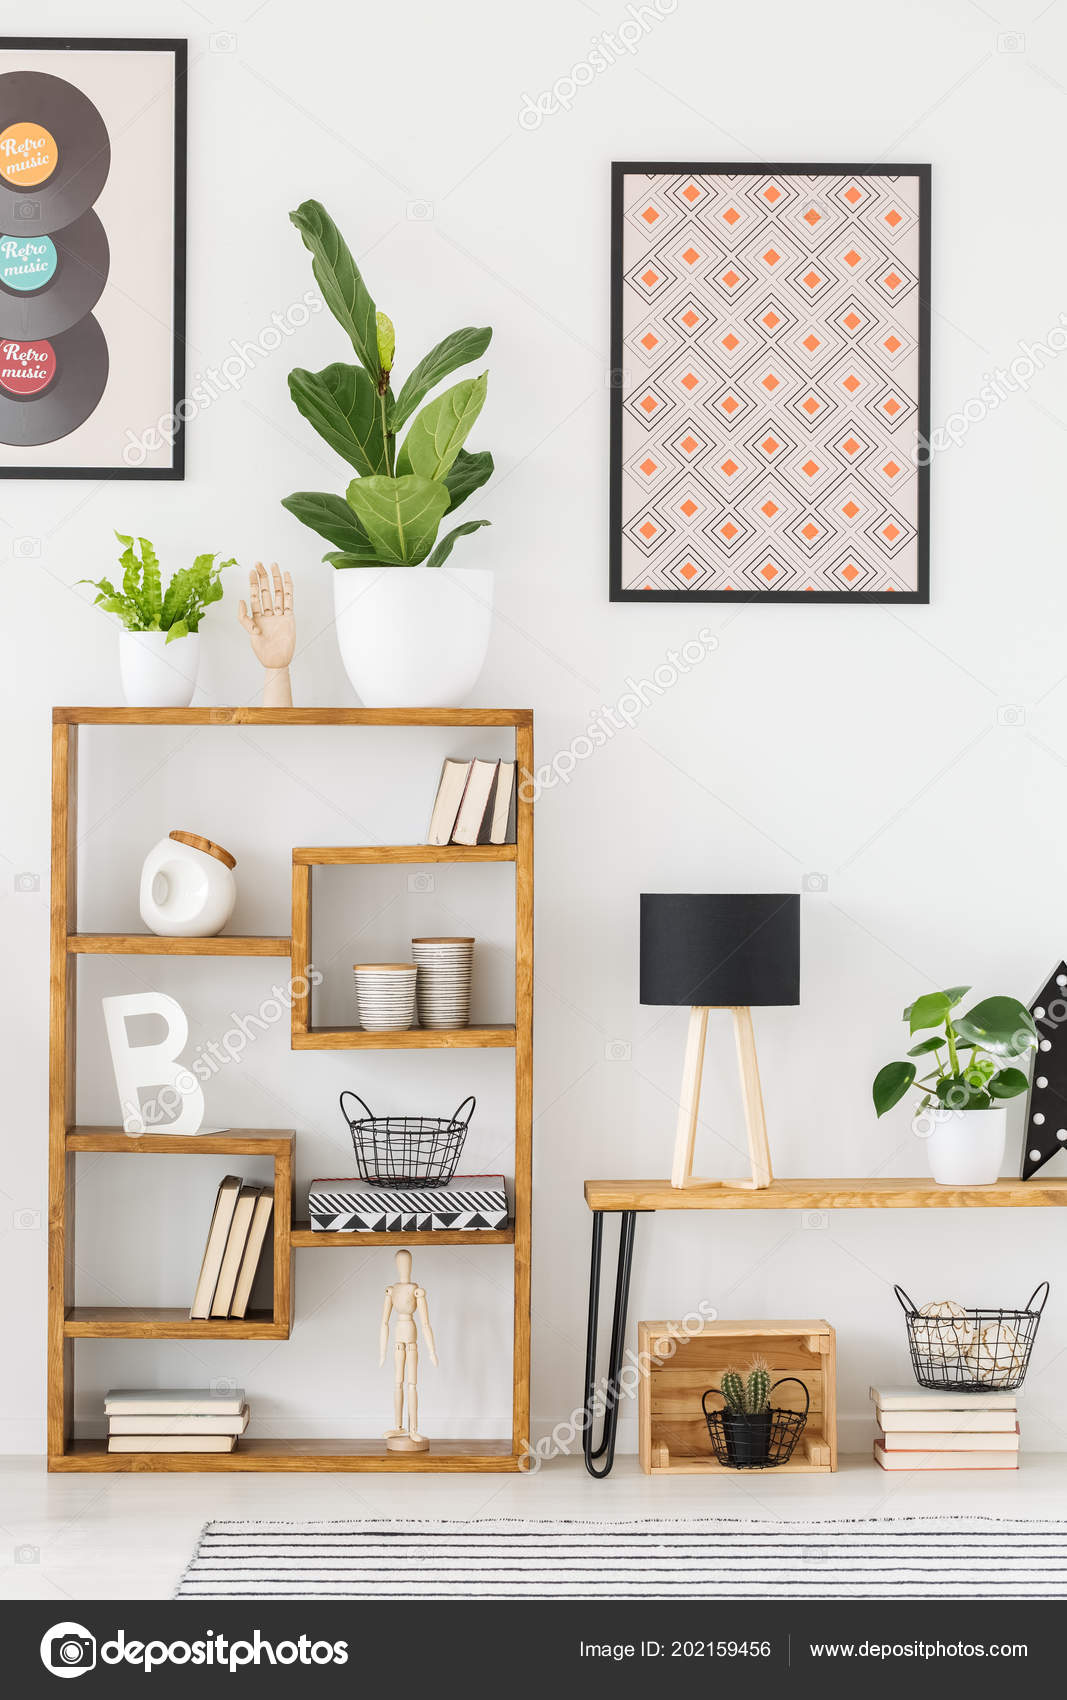 . Real Photo Wooden Shelf Ornaments Living Room Posters Wall   Stock